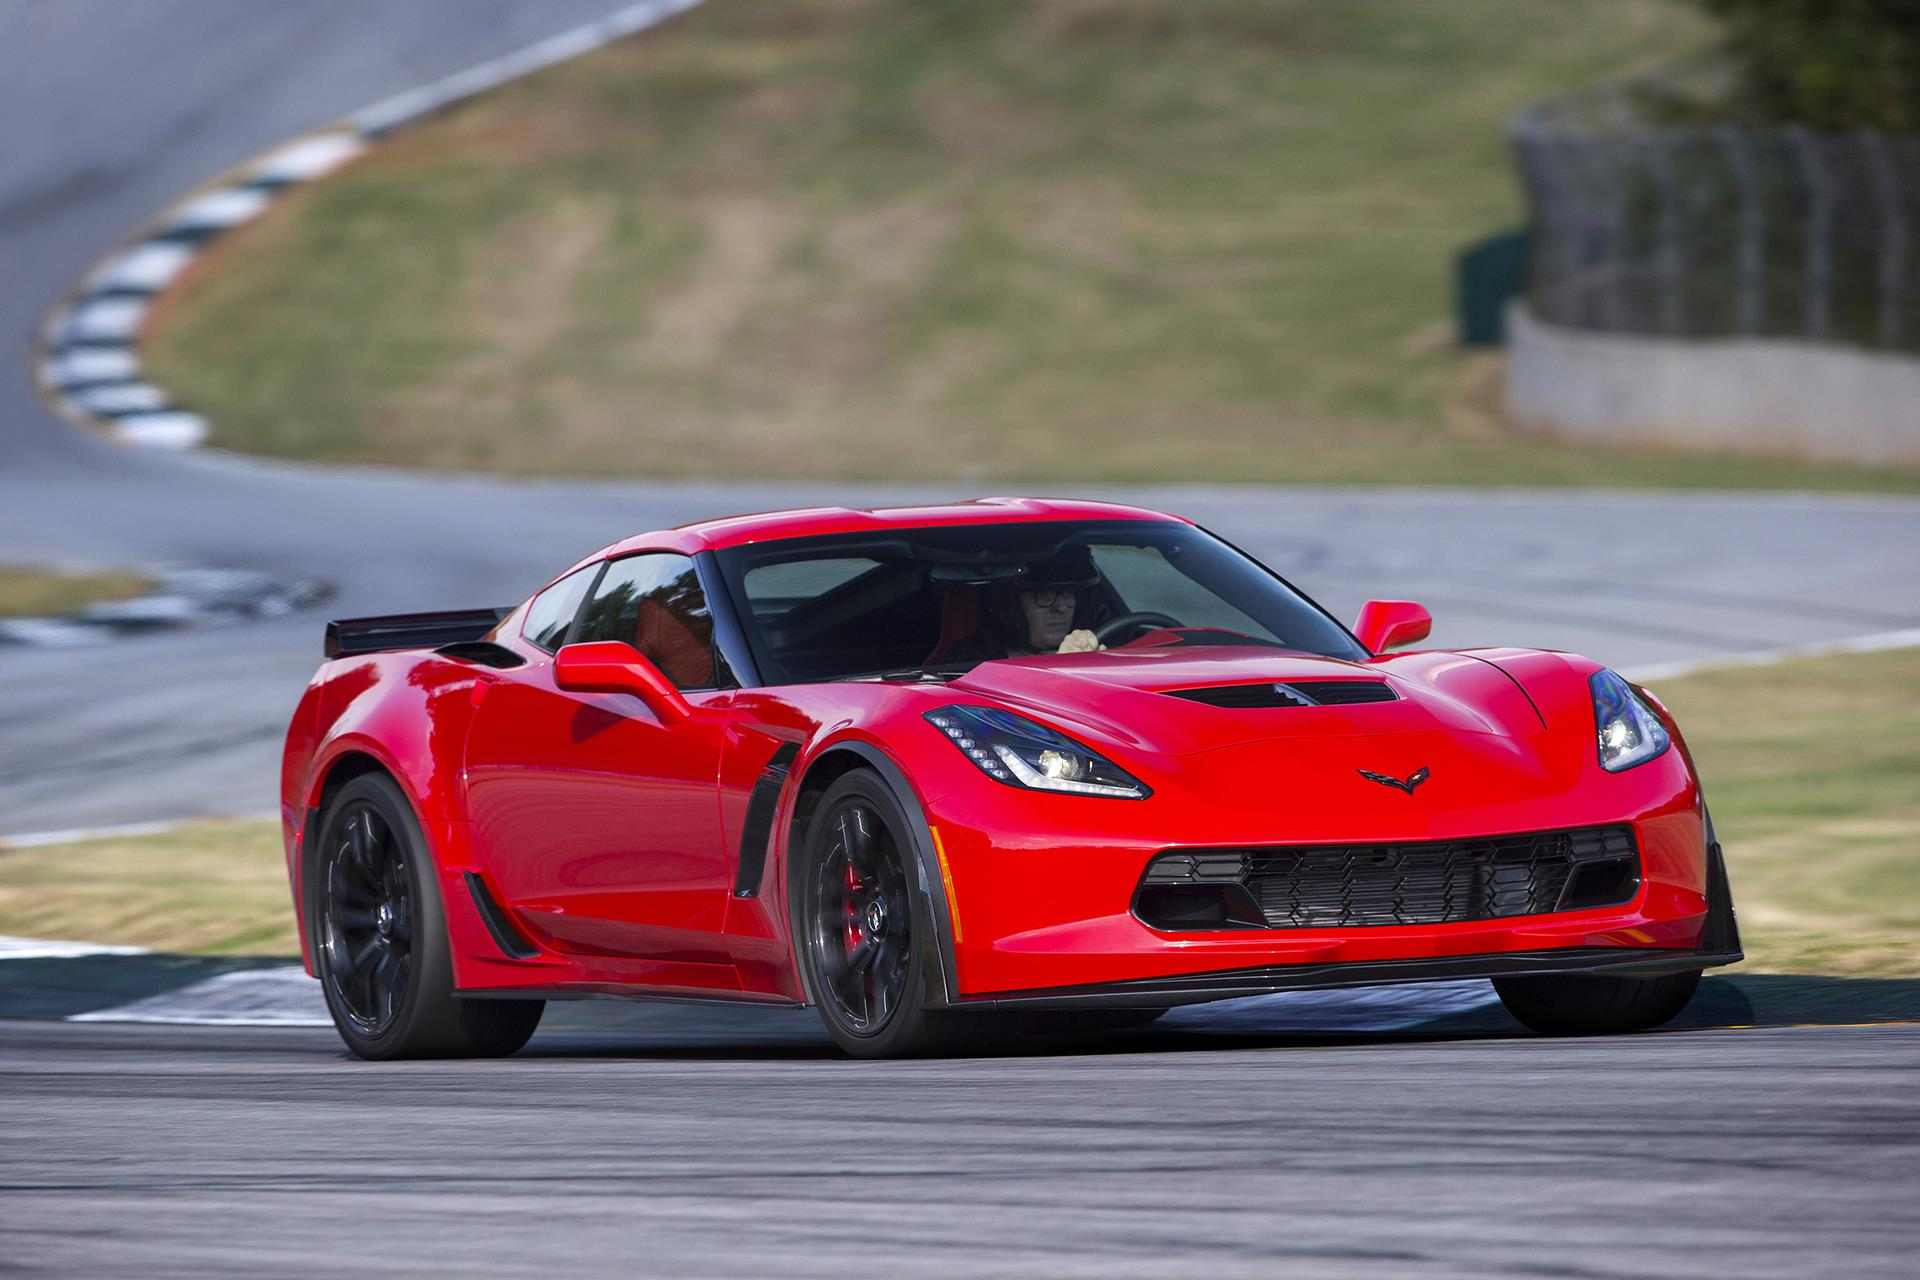 2016 Chevrolet Corvette Z06 Wallpaper Conceptcarz Com